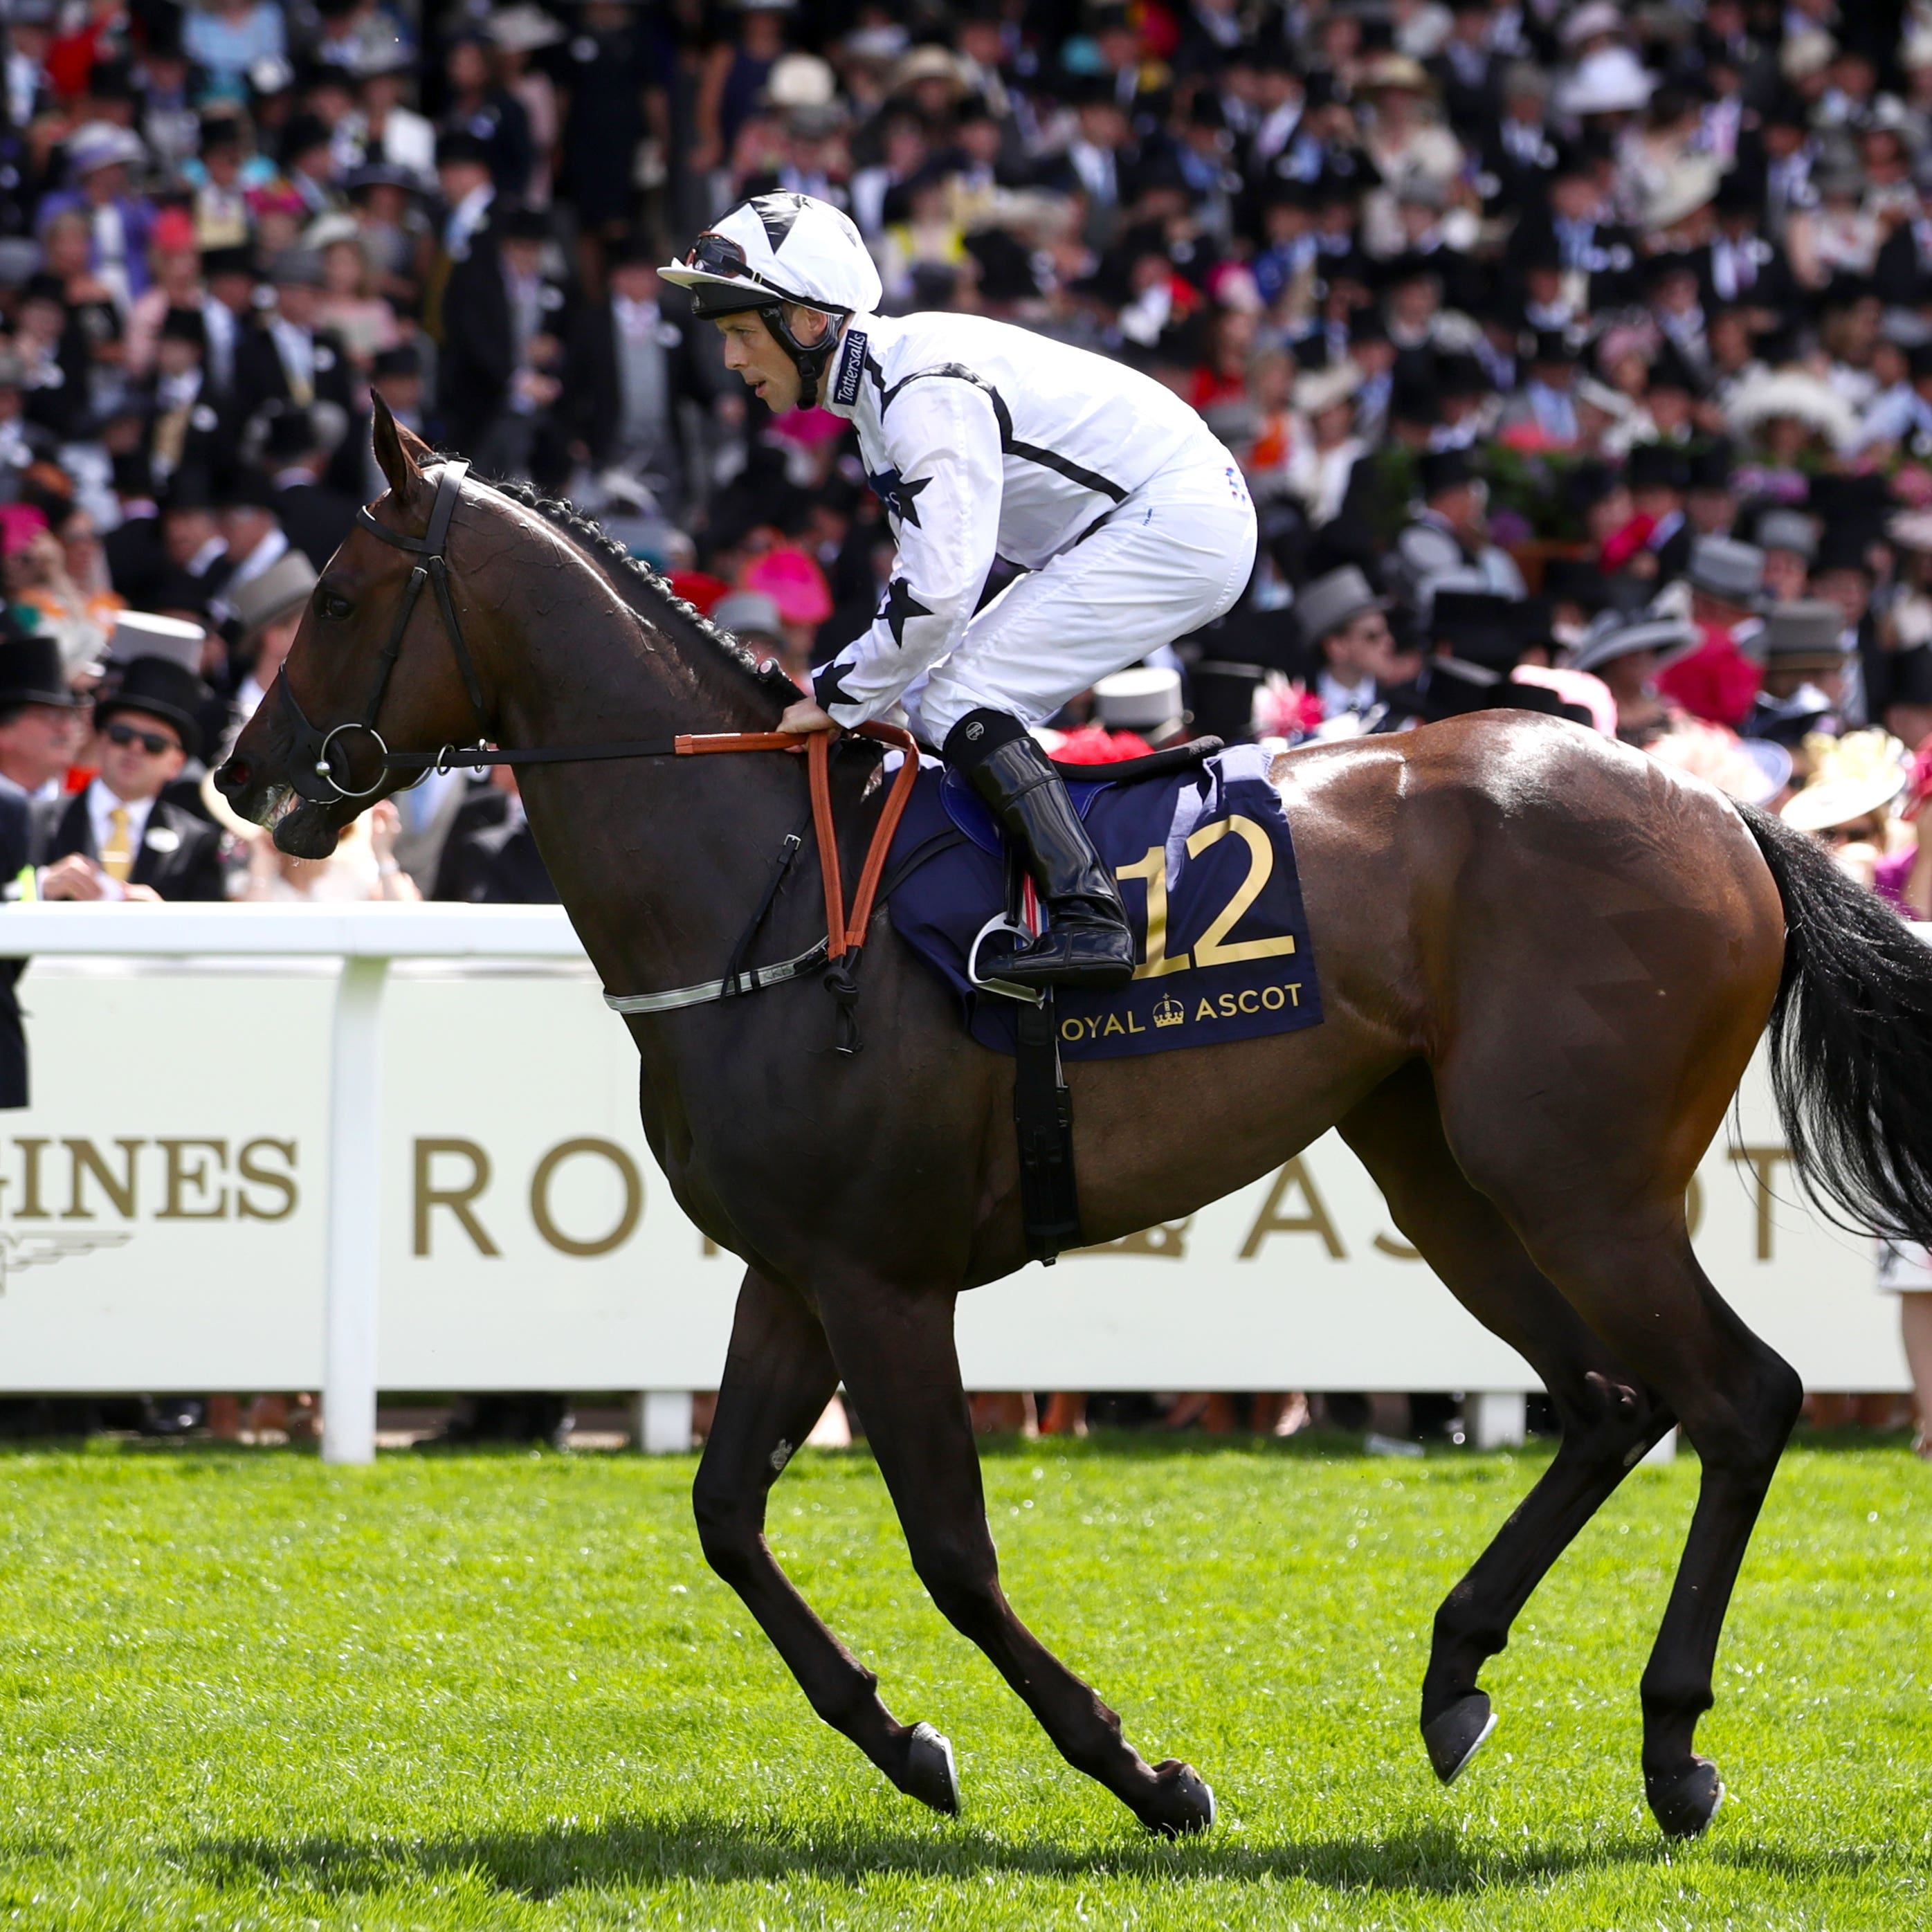 Little Kim goes to post for the Queen Mary at Royal Ascot